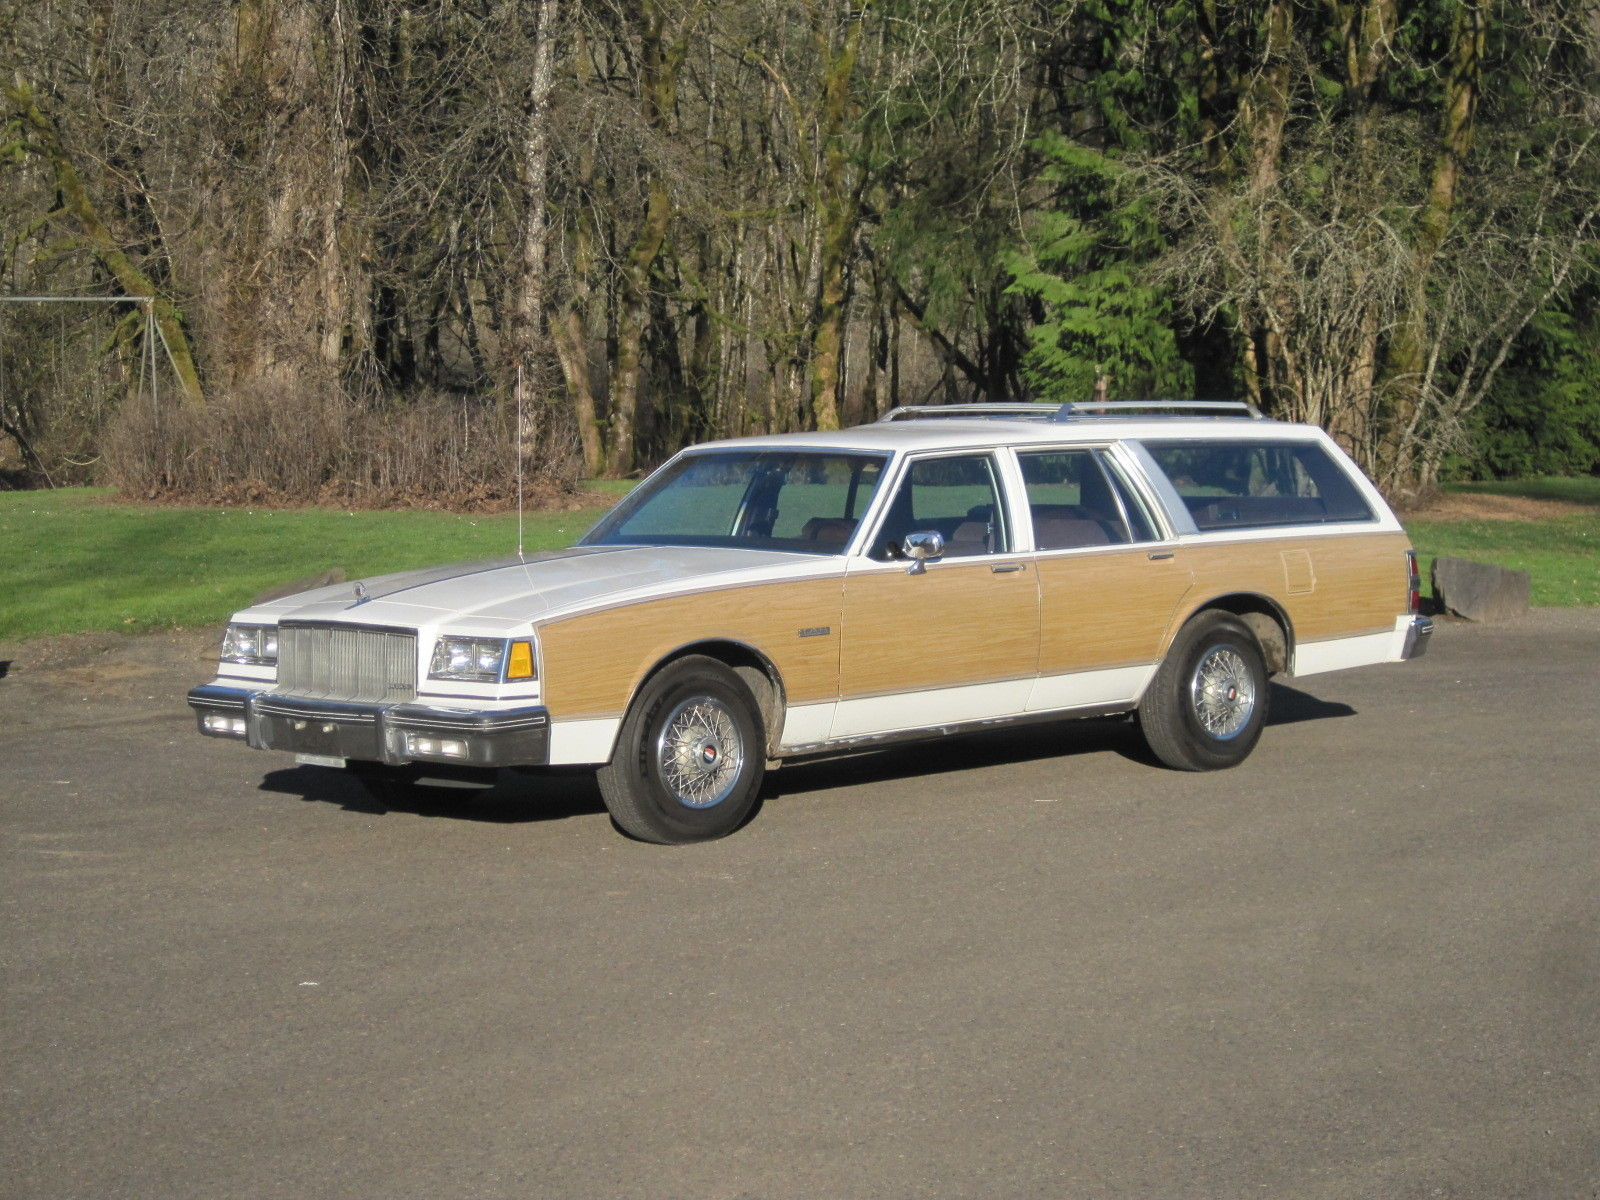 1988 buick lesabre estate wagon woody station 3rd seat stationwagon clean nice for sale in. Black Bedroom Furniture Sets. Home Design Ideas